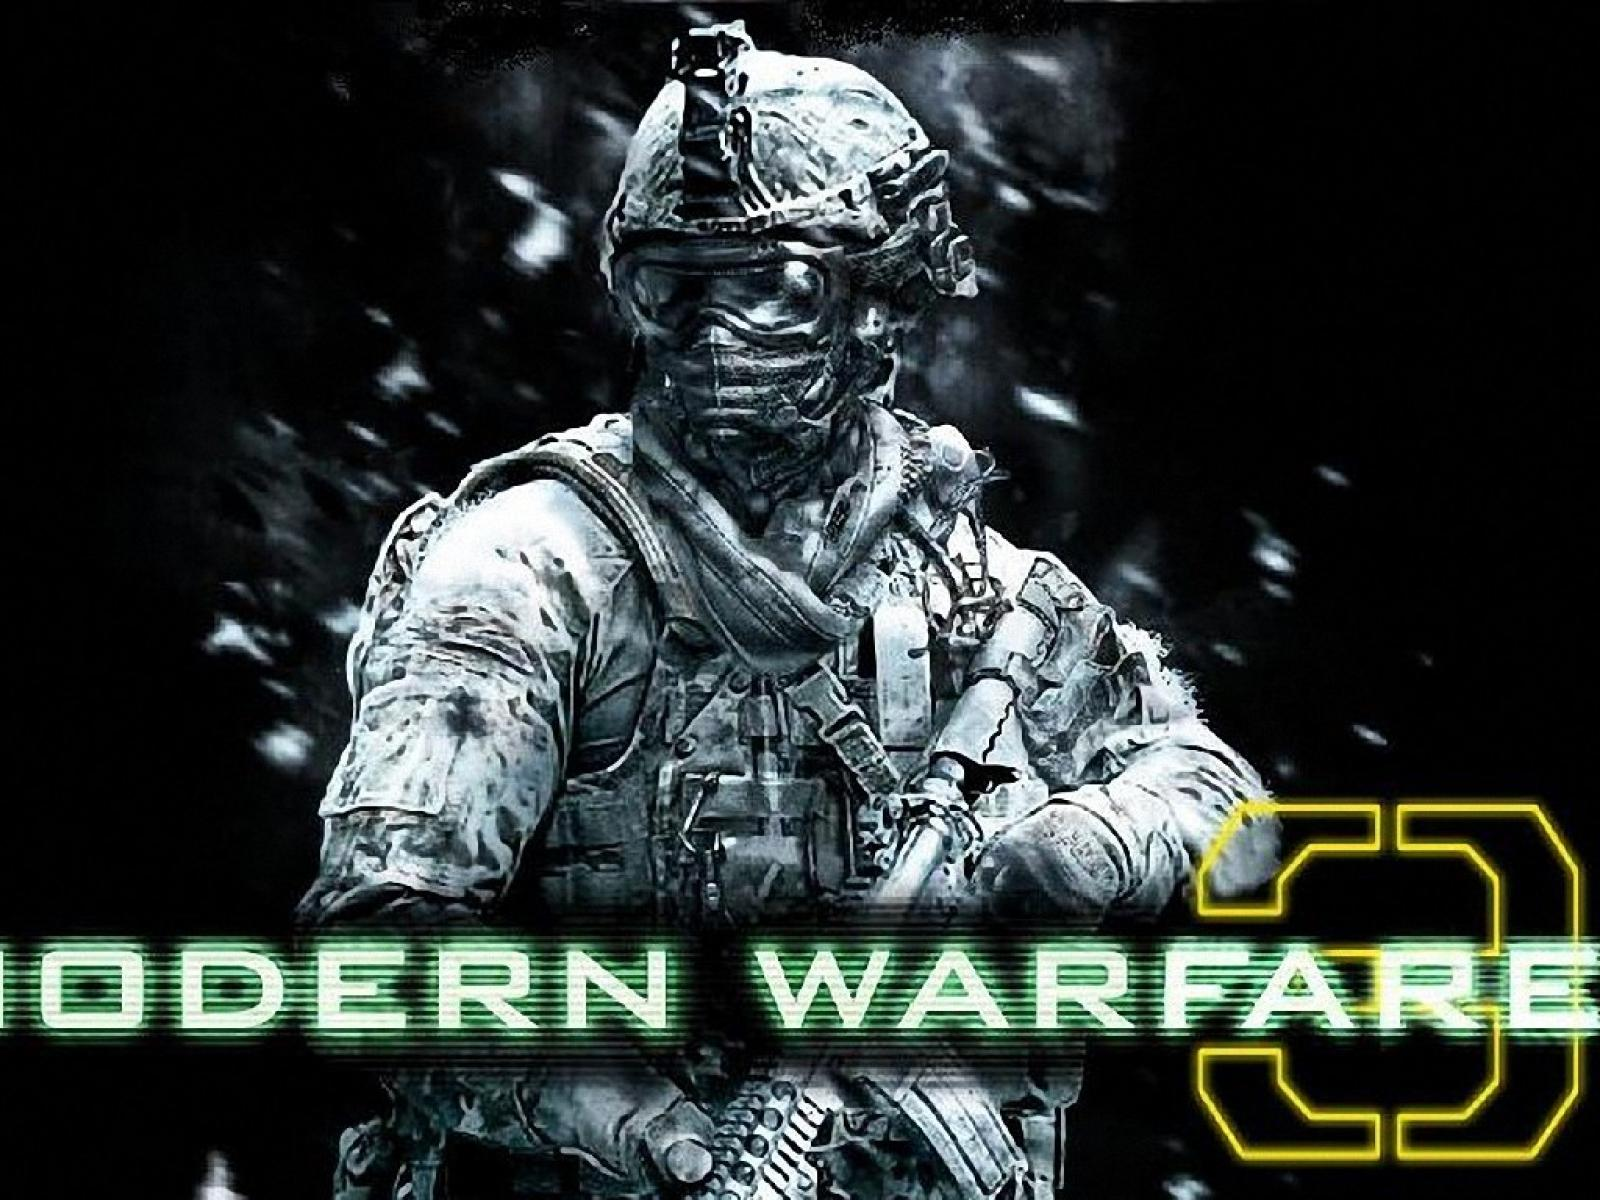 Call Of Duty Modern Warfare 3 Wallpapers Pictures Download 1600x1200